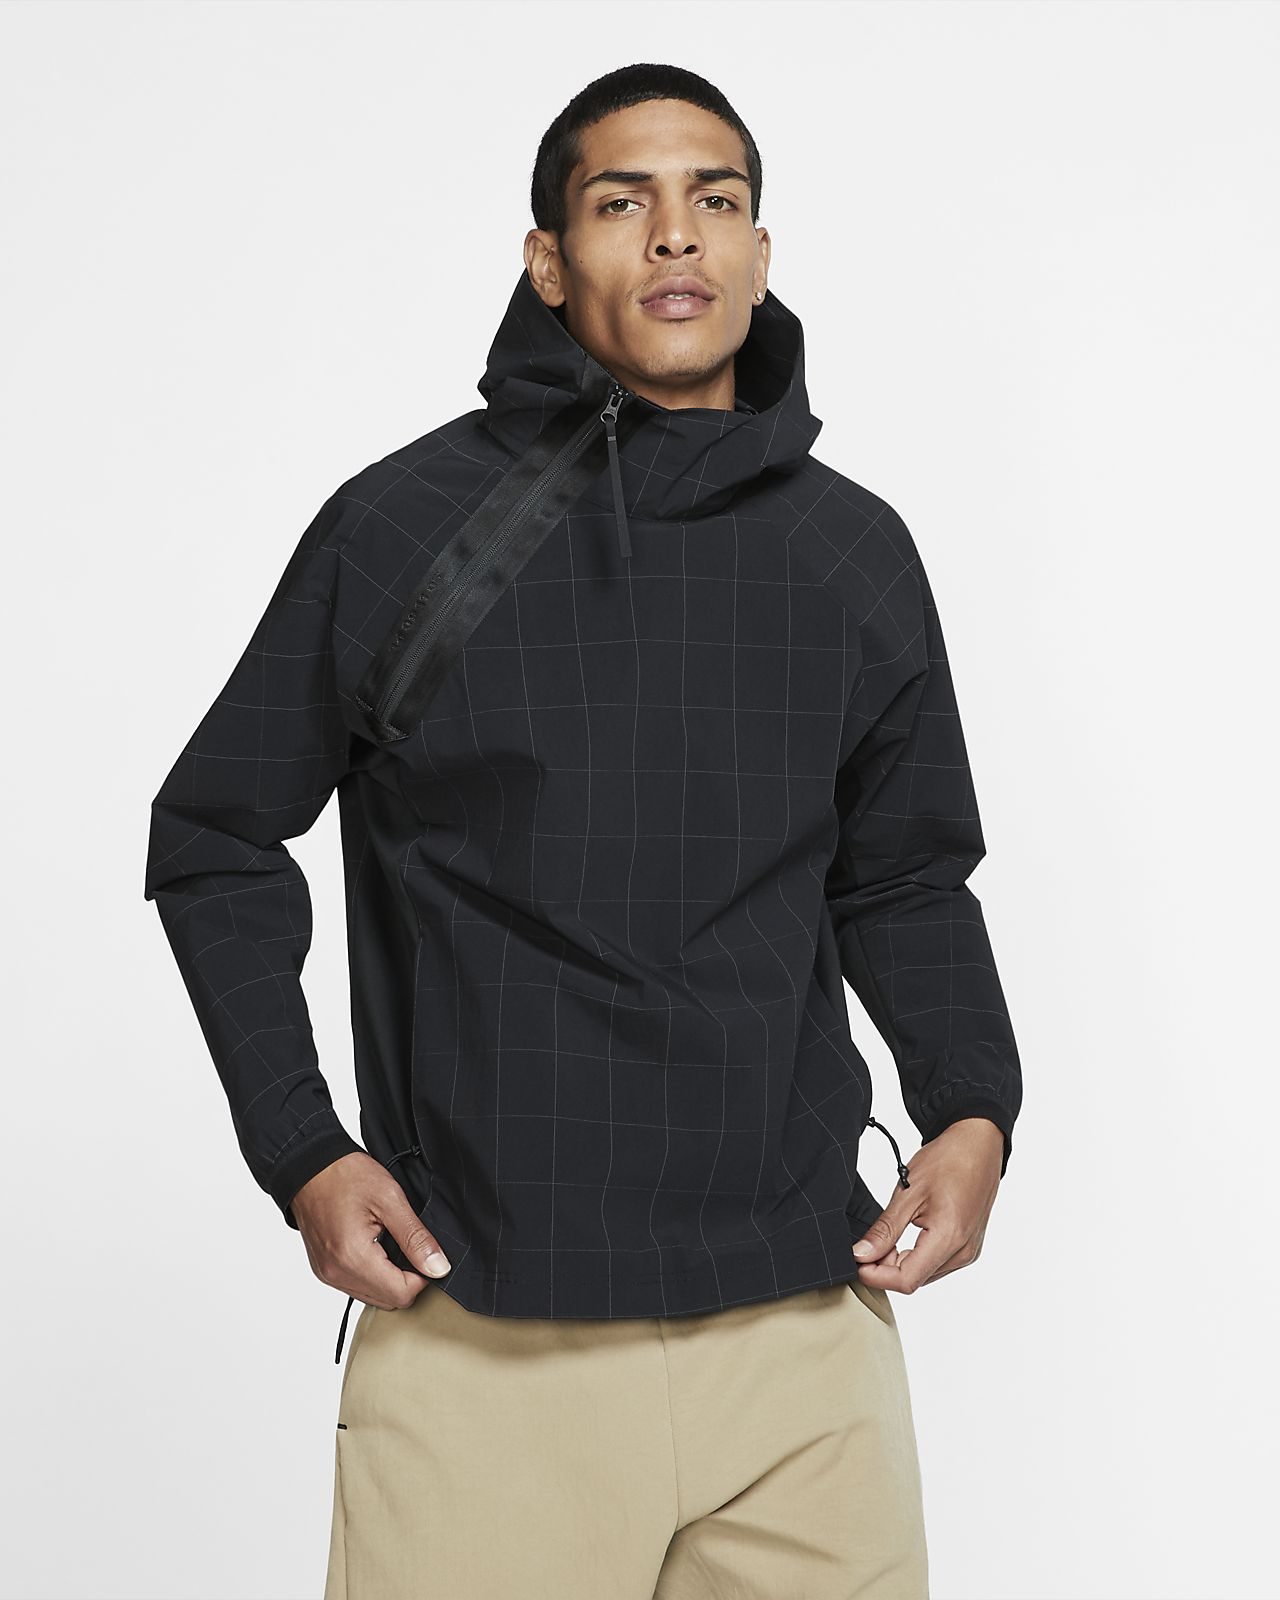 Nike Sportswear Tech Pack Men's Hooded Woven Jacket